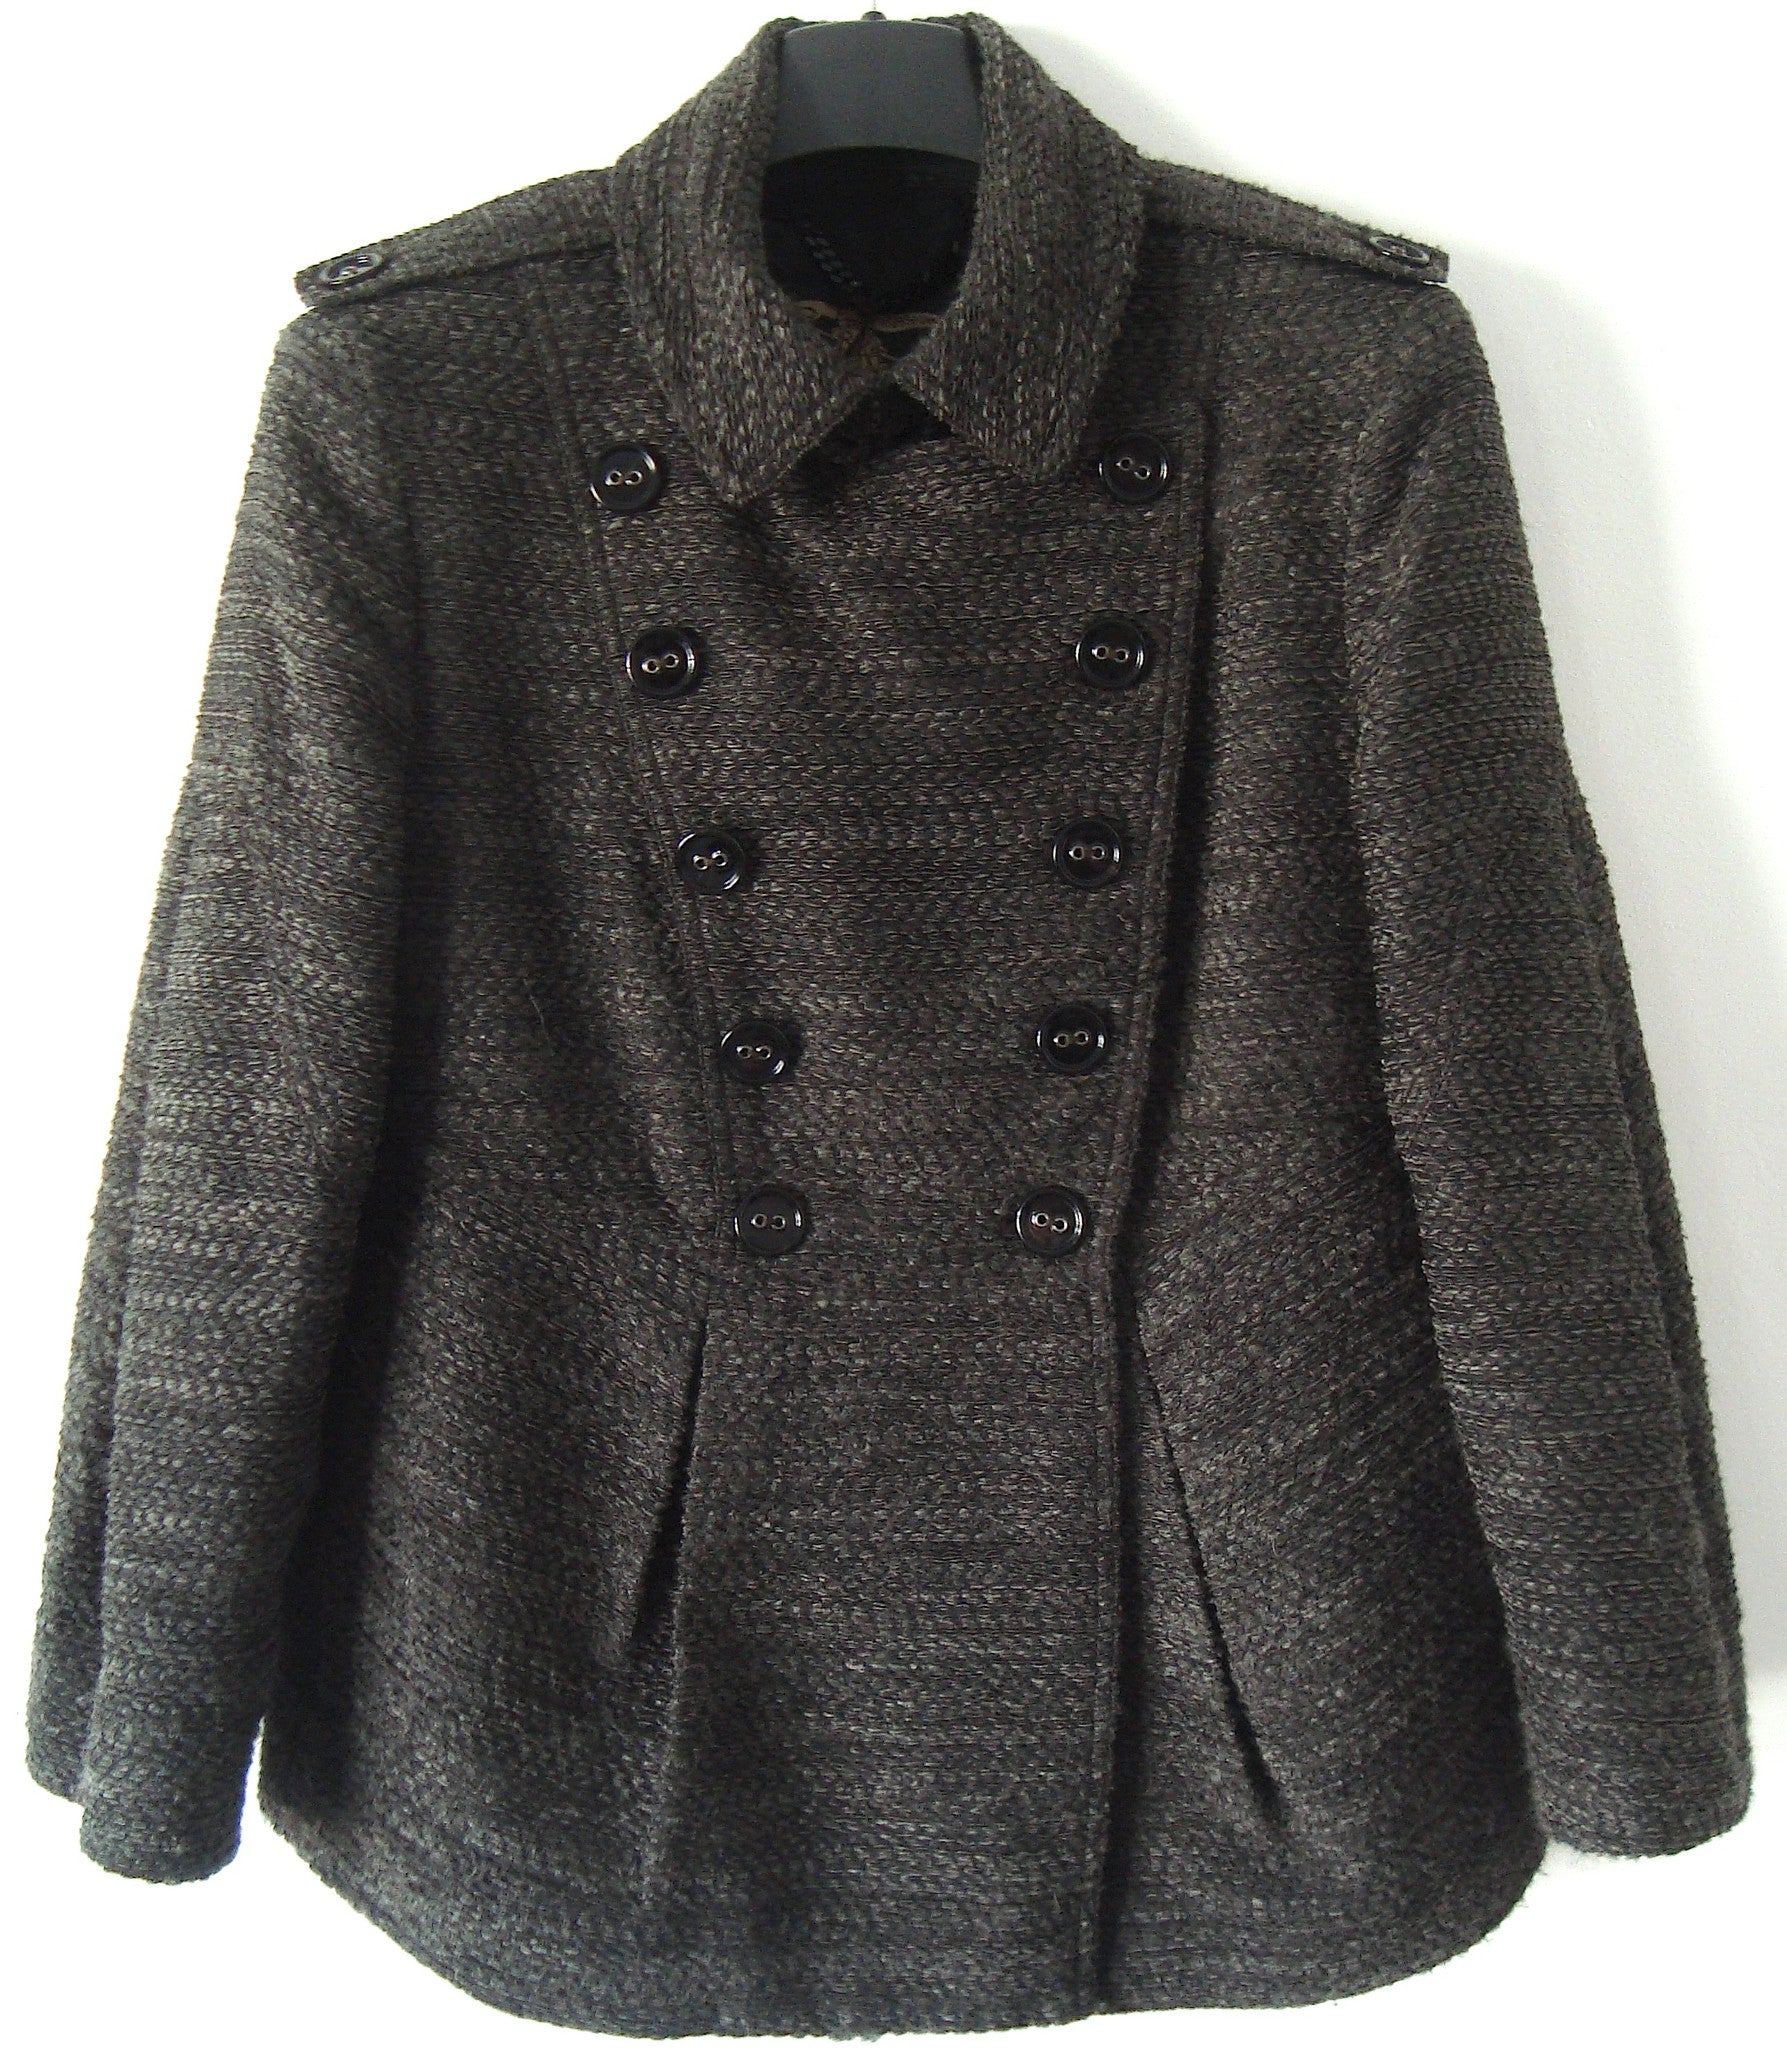 2008 Embroidered Peplum Peacoat